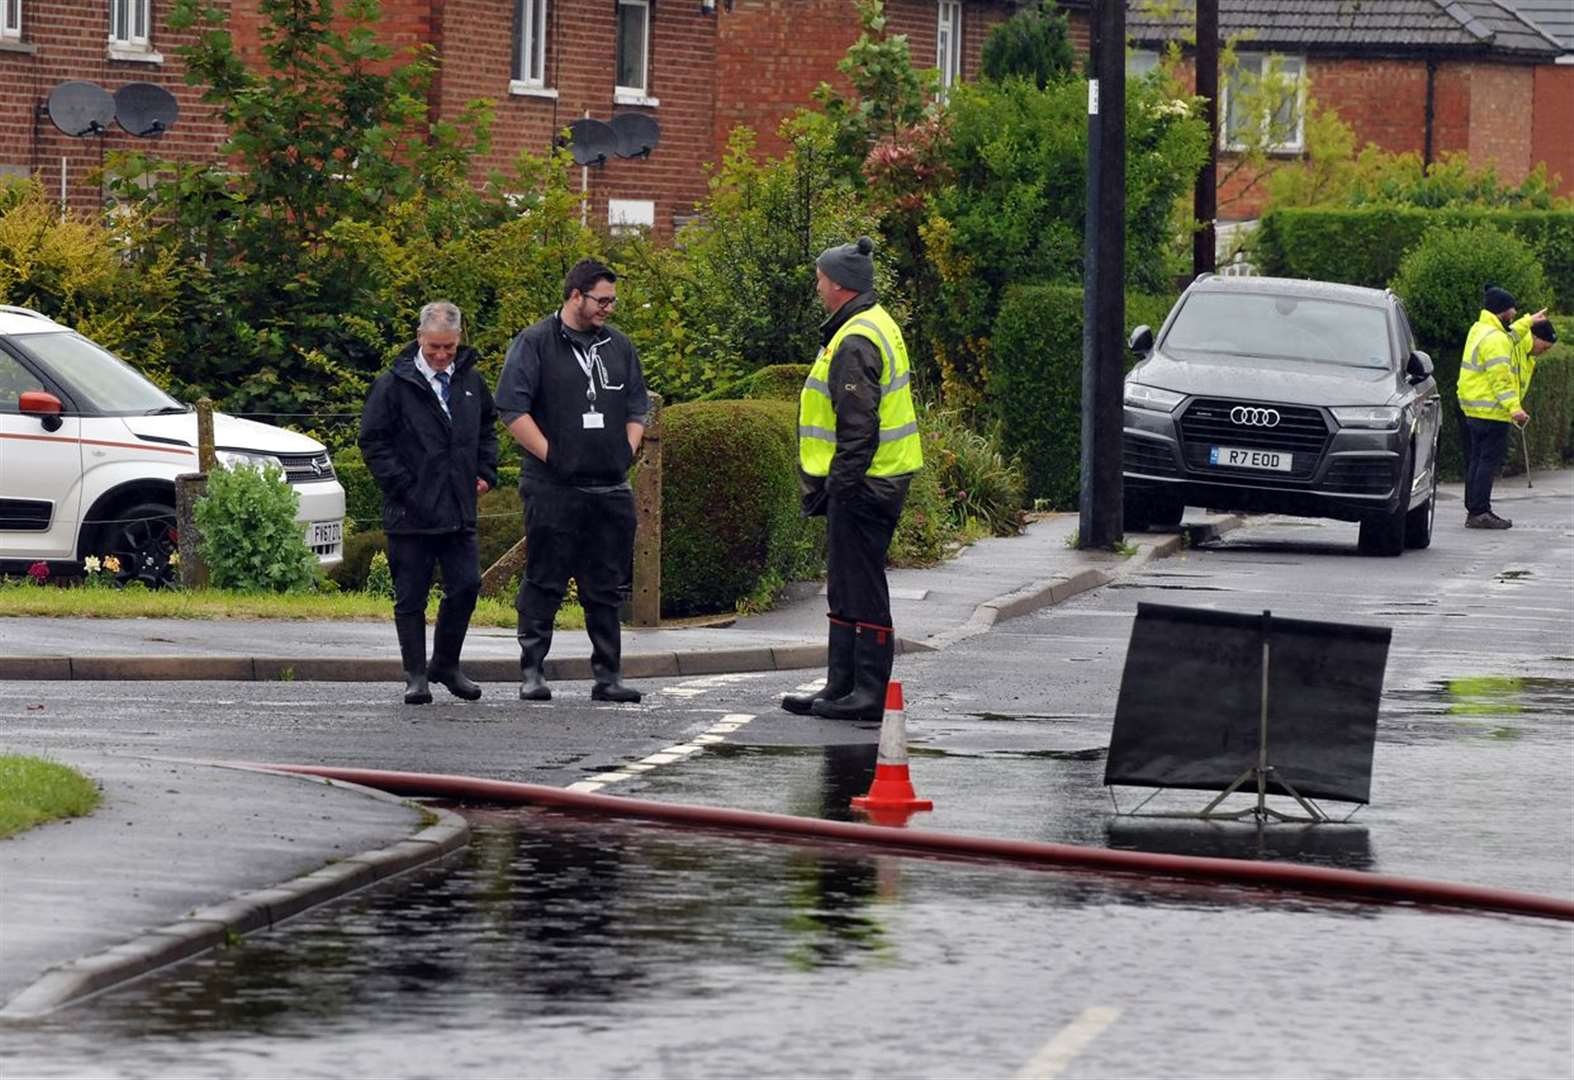 South Holland back to normal after heavy rain - but more could be on the way